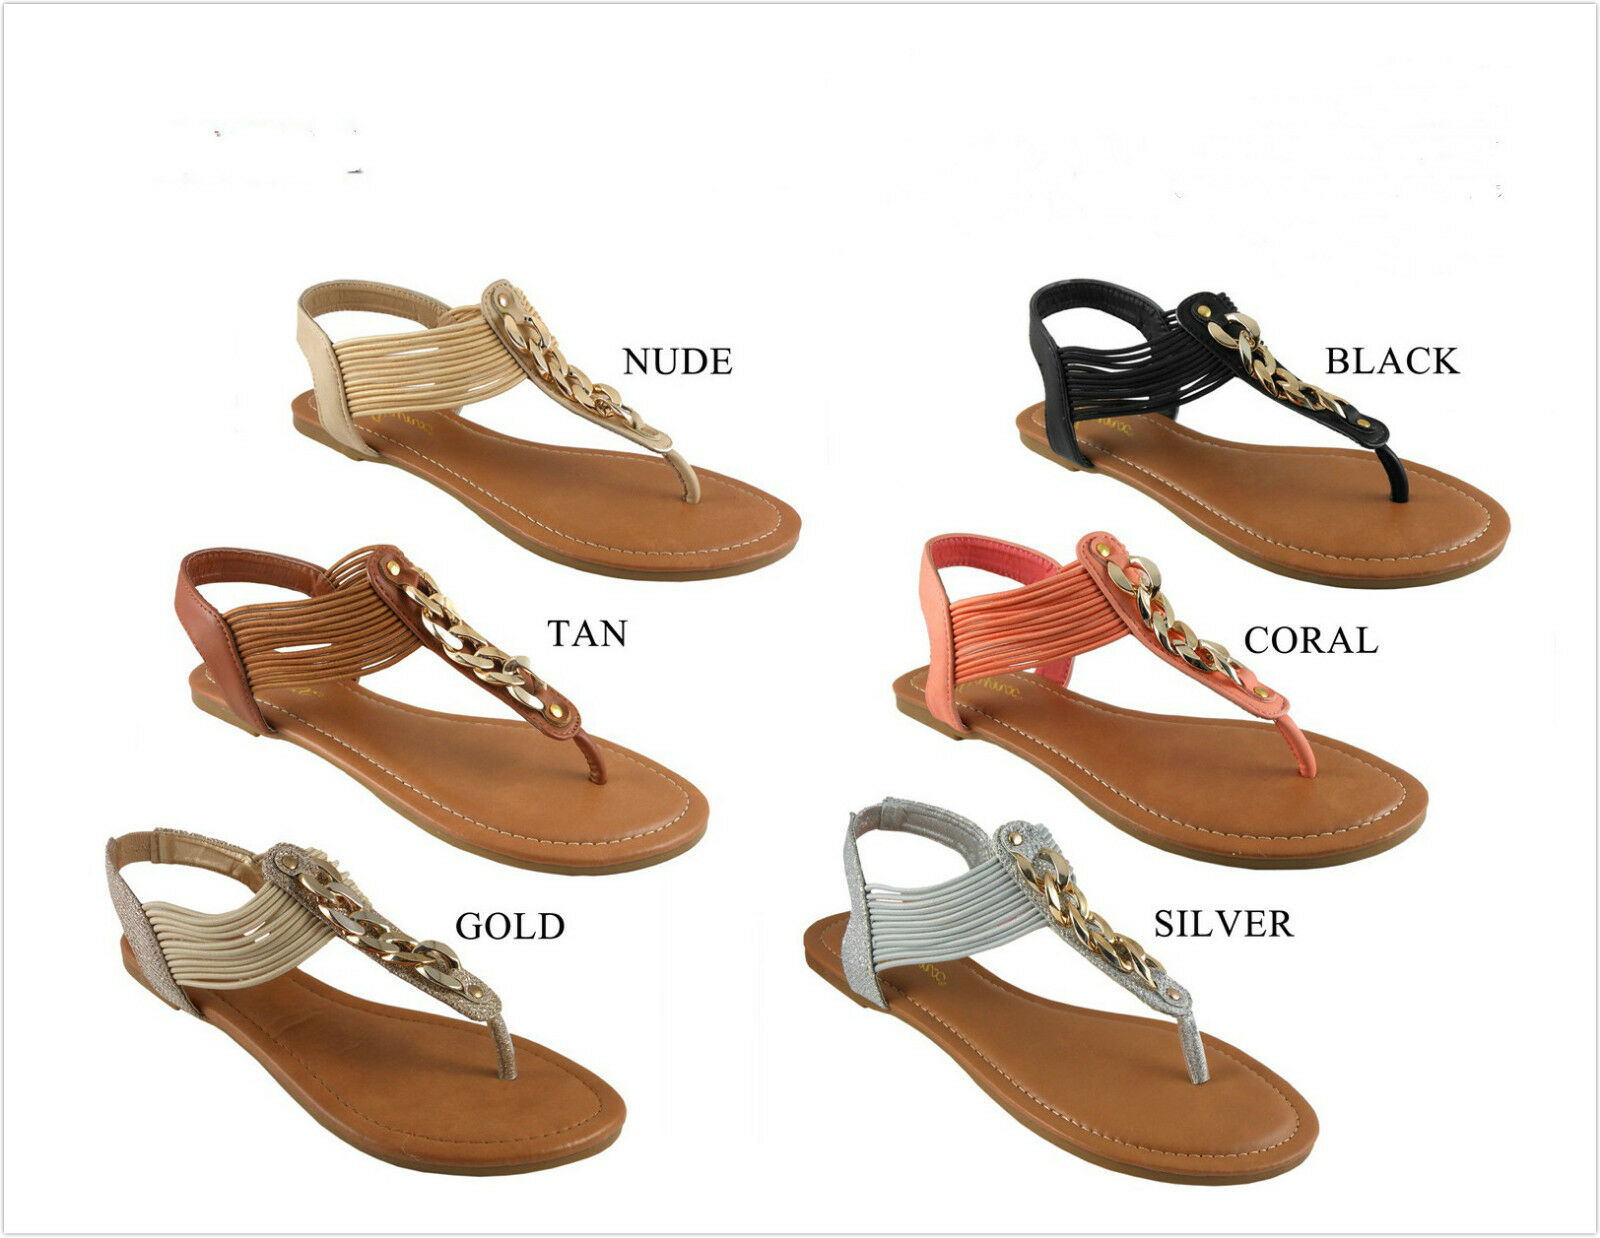 Brand New Women's Fashion Strings Shoes & Metal Cable Sandal Shoes Strings Size 6 - 10 f26940